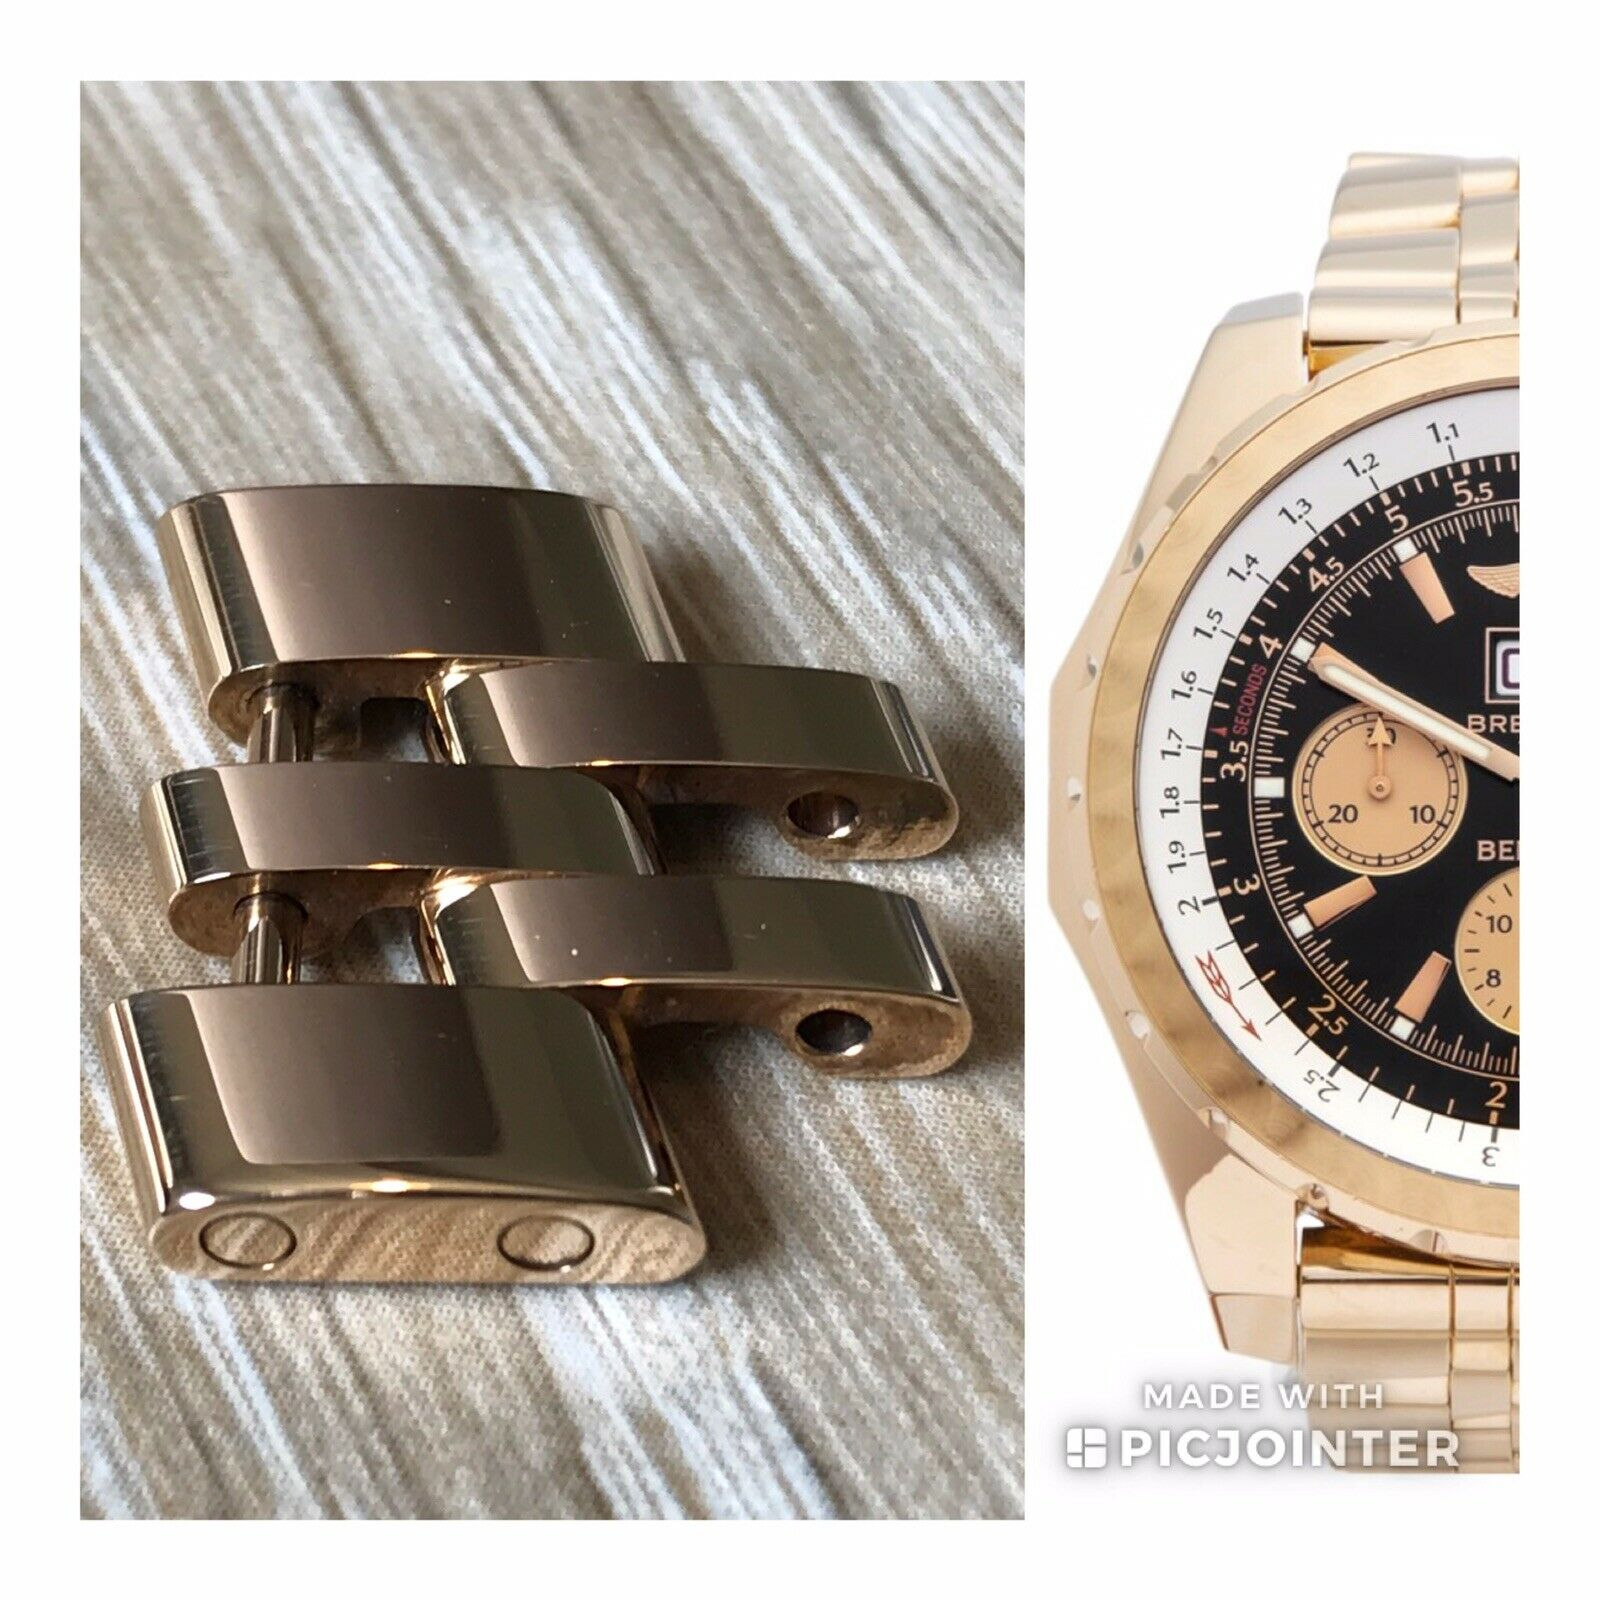 Breitling Bentley 6 75 Chronograph 18k Rose Gold Watch H44363 For Sale Ebay